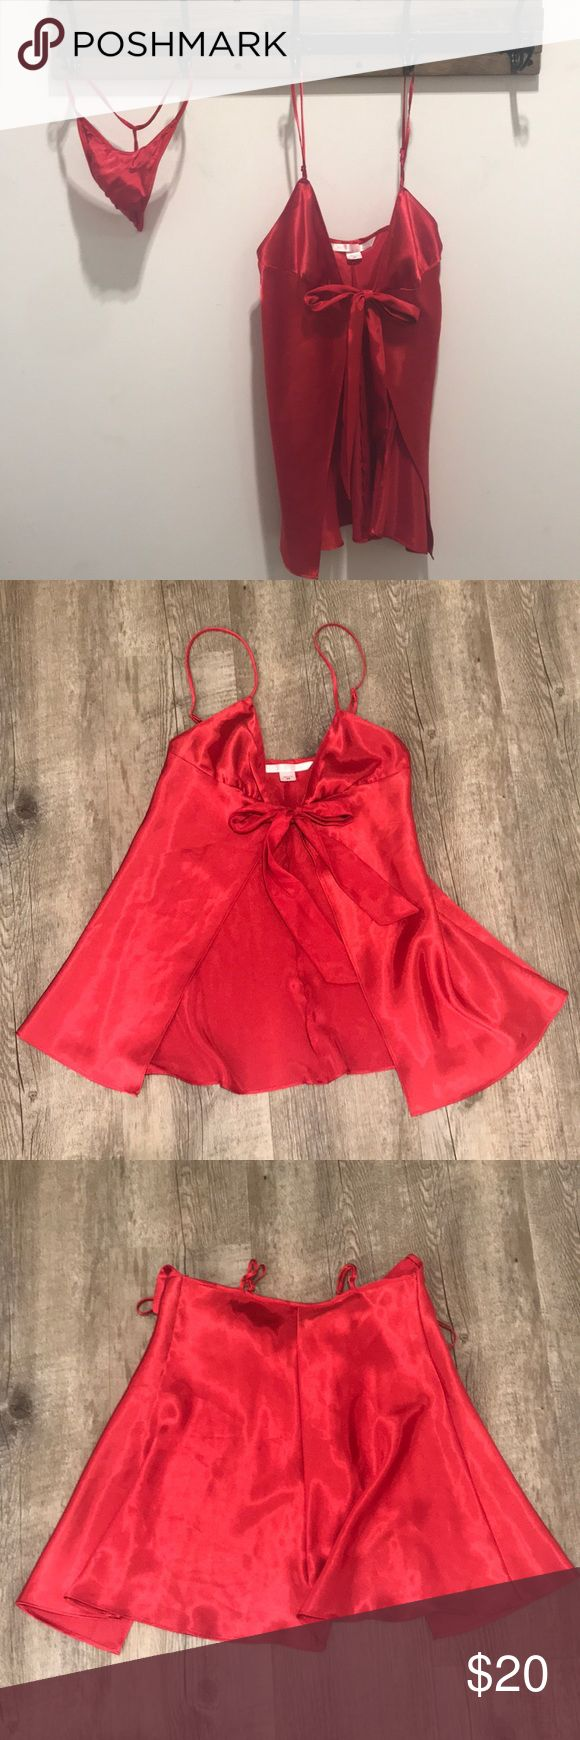 Valentine's Day Babydoll Set! Satin red set from VS. size XS. Can come with or without thing. Will match any red underwear. Victoria's Secret Intimates & Sleepwear Chemises & Slips